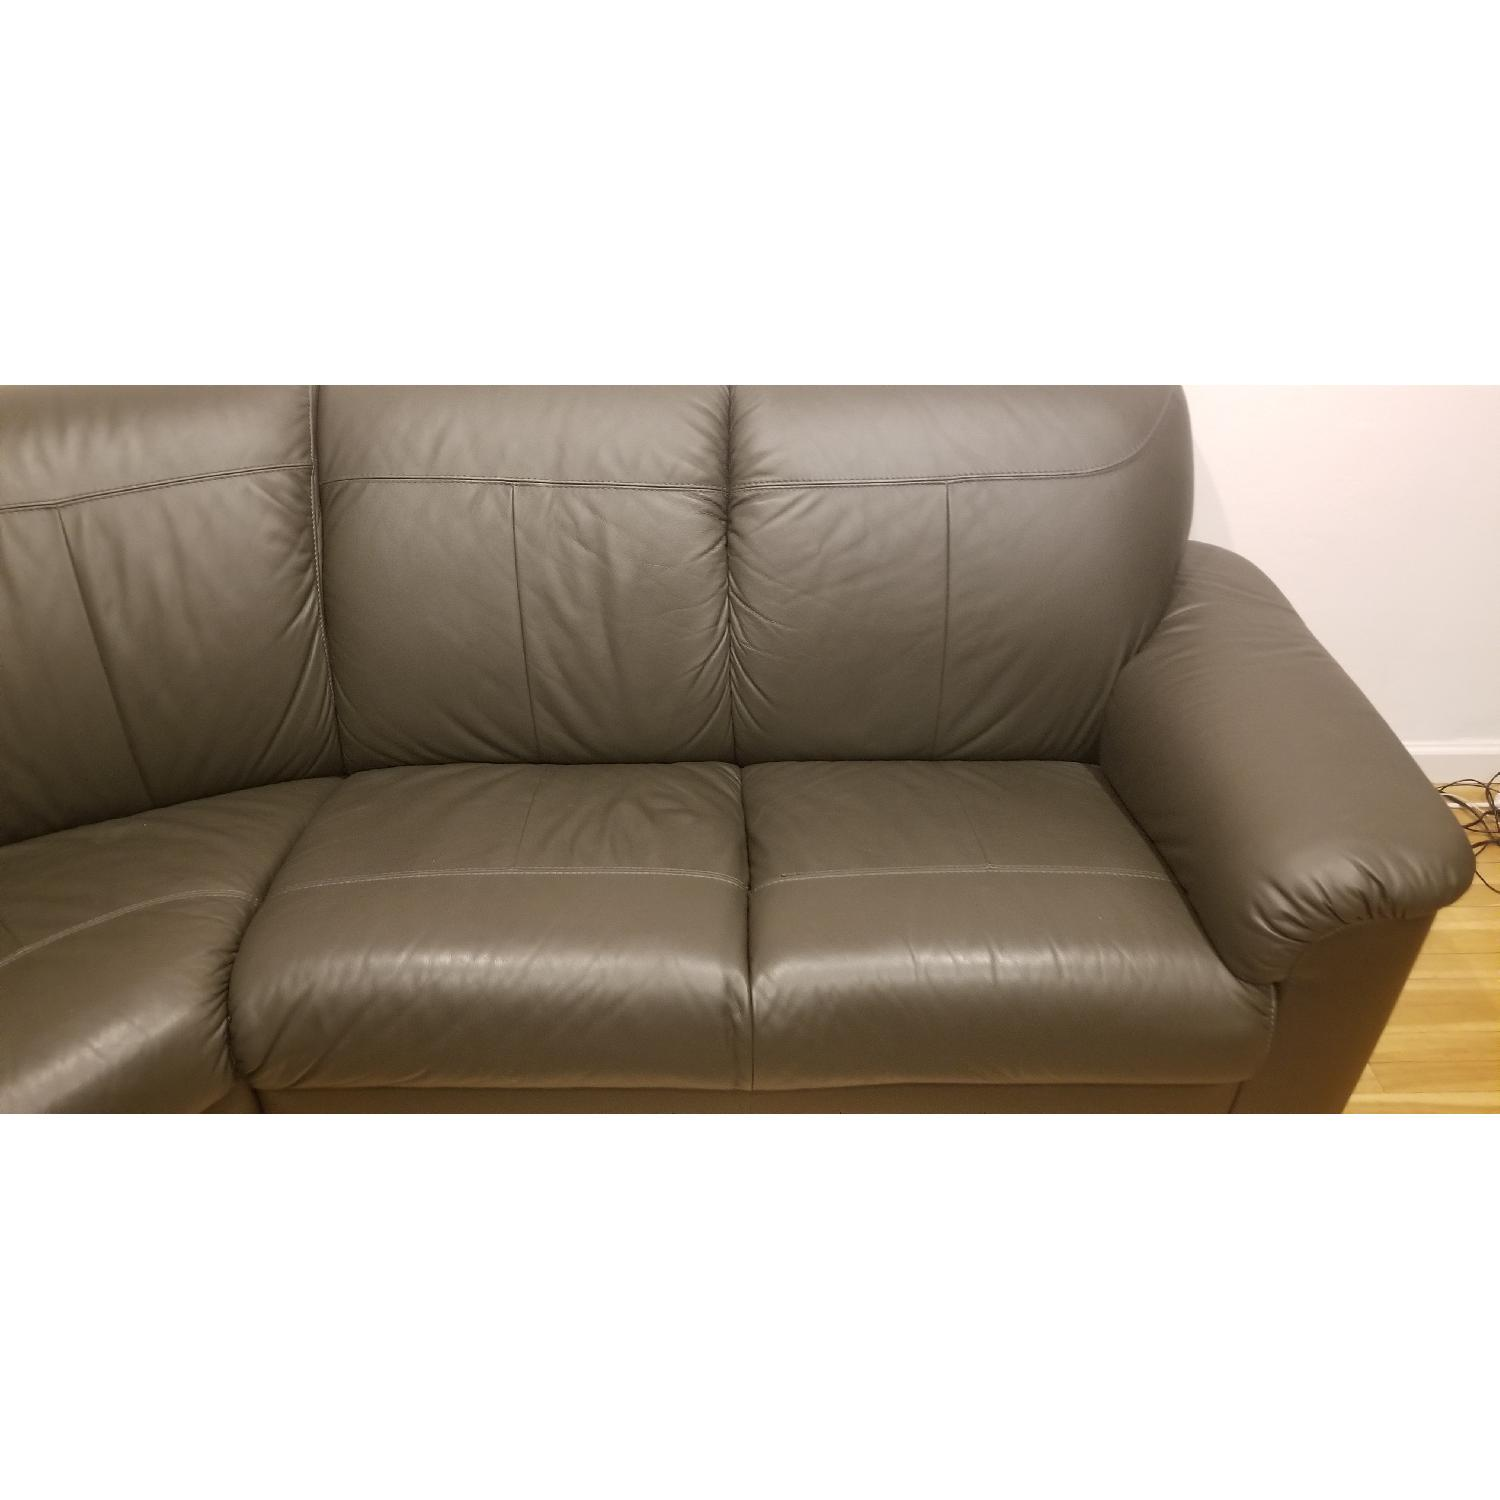 Ikea Timsfors Faux Leather Sectional Sofa - image-6